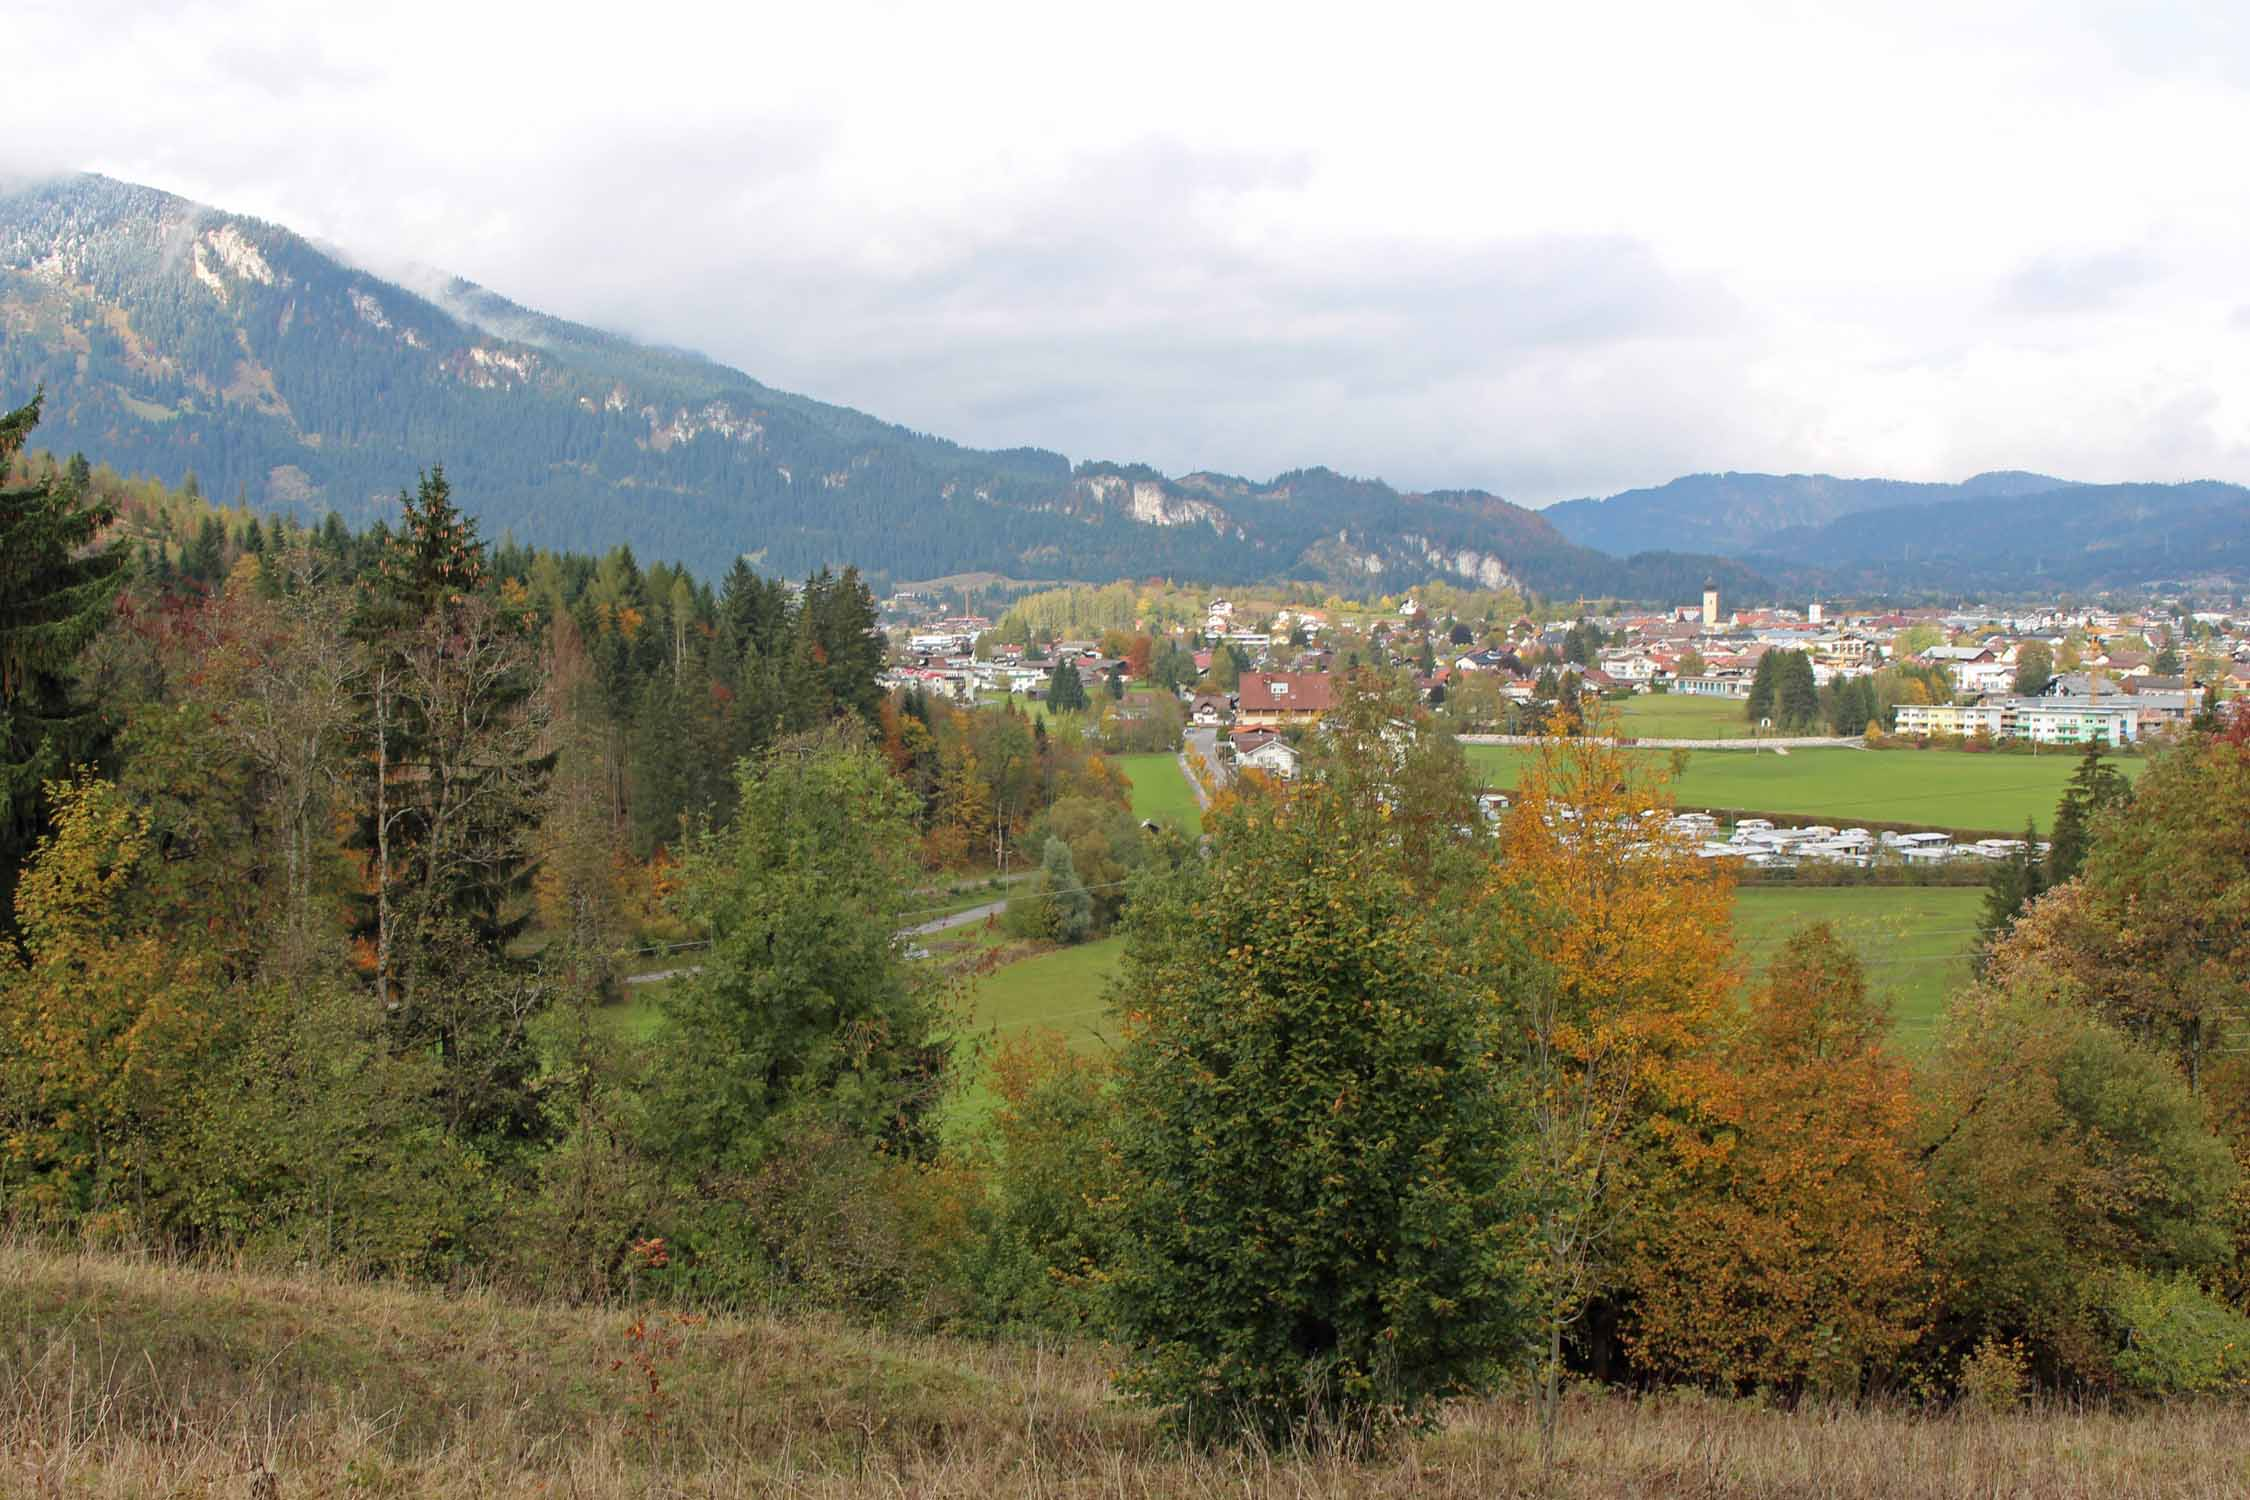 View on the city of Reutte, Tirol